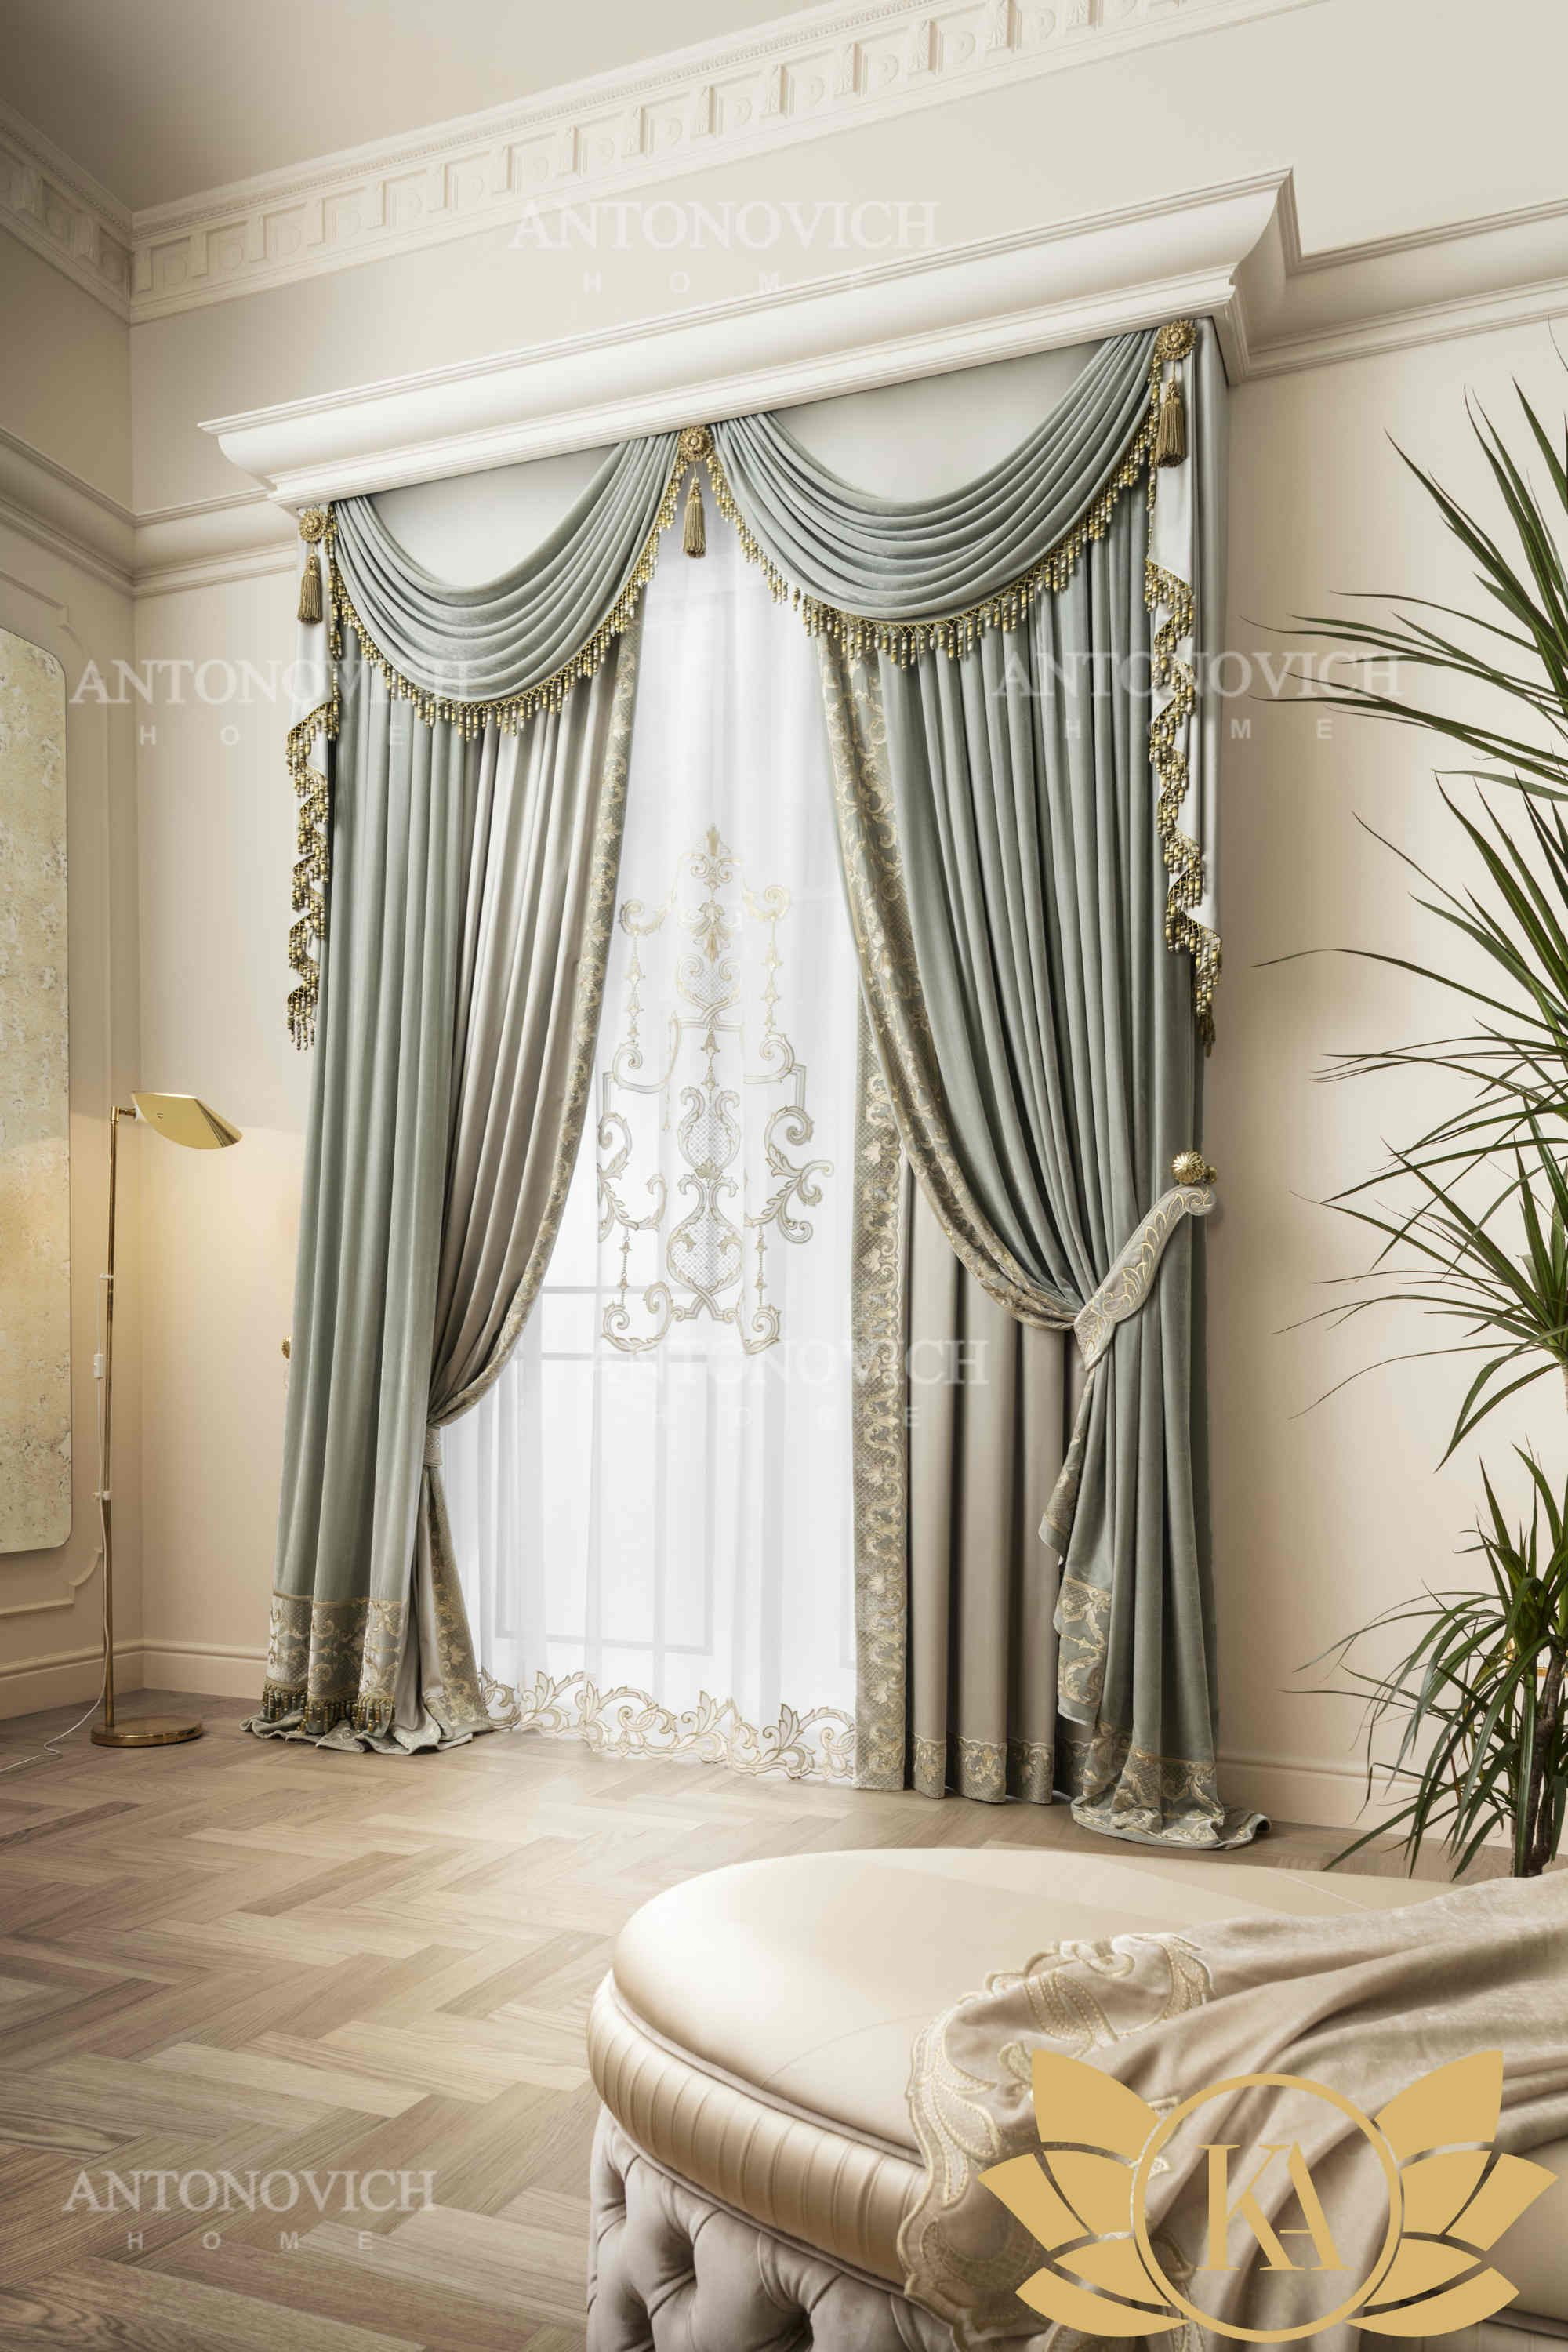 Exclusive Curtains Presented In Our Showroom Are Distinguished By